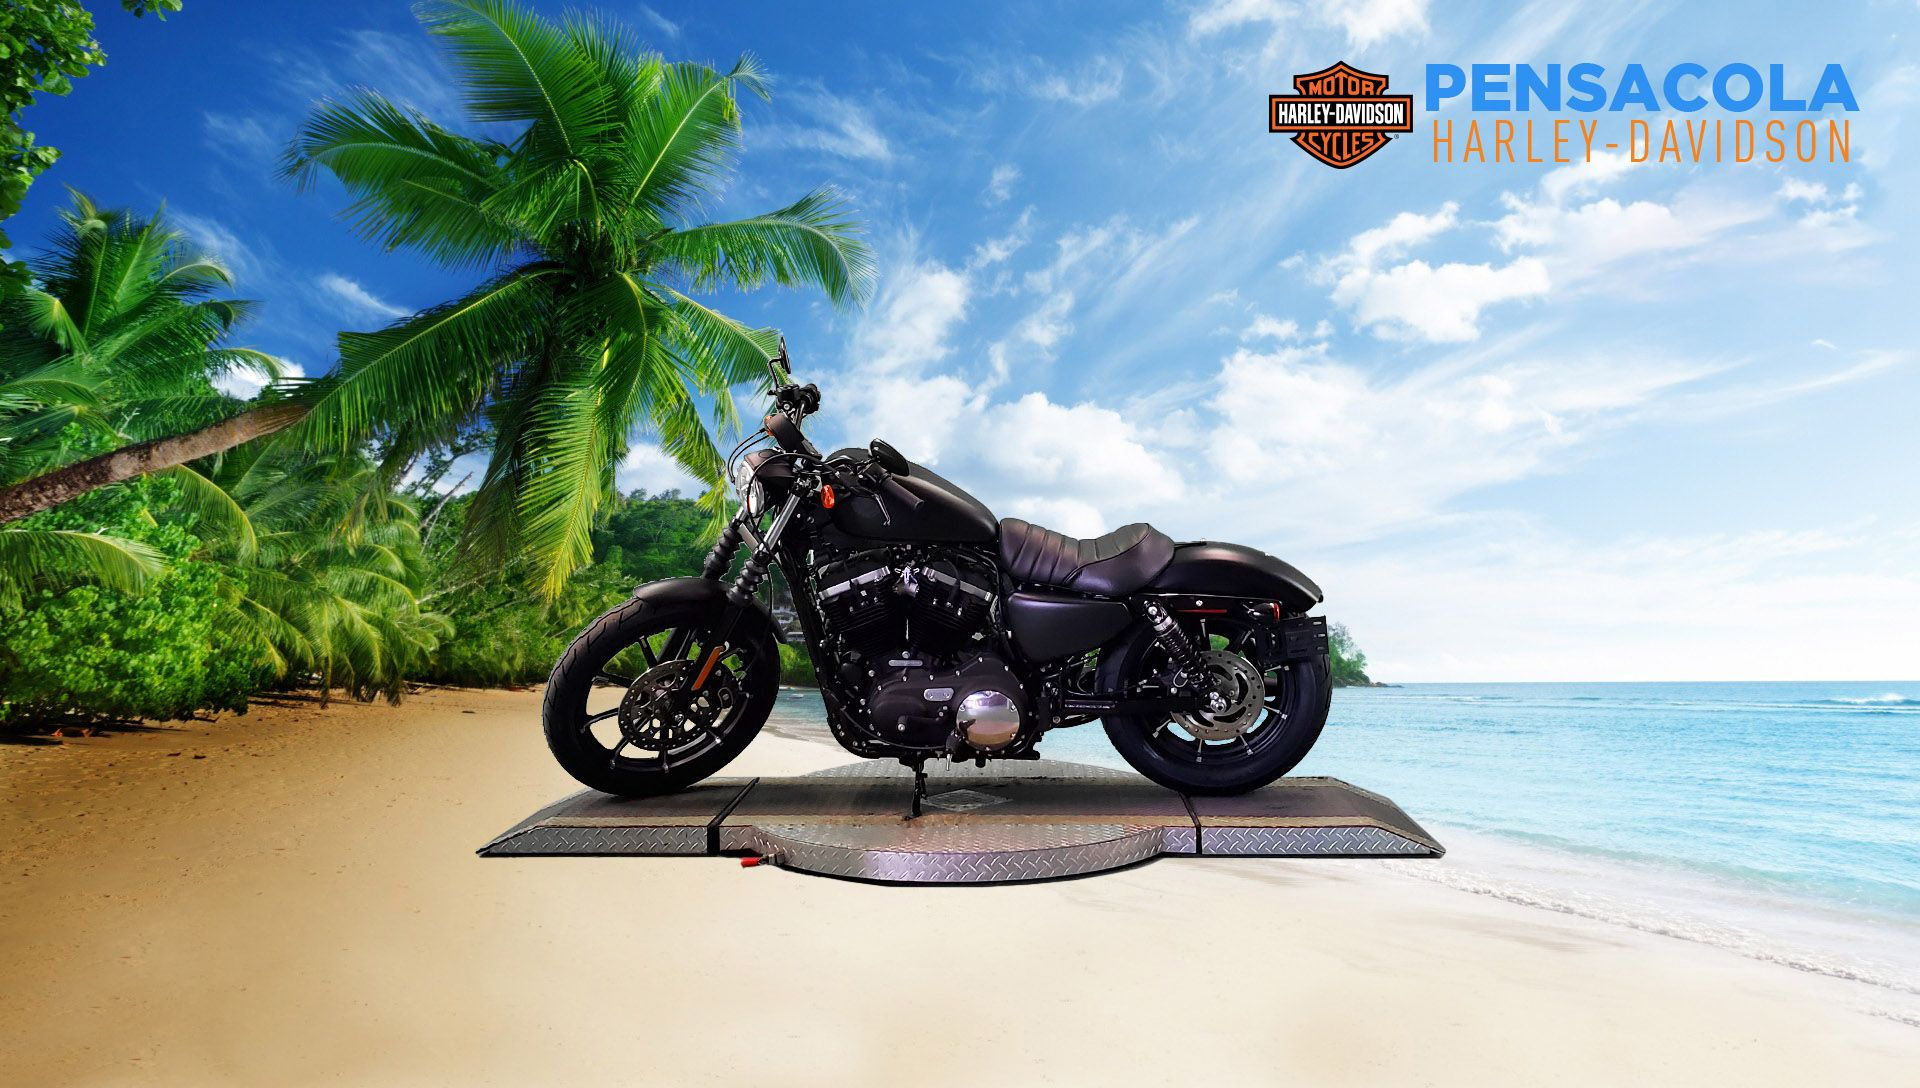 New 2021 Harley-Davidson Iron 883 XL883N